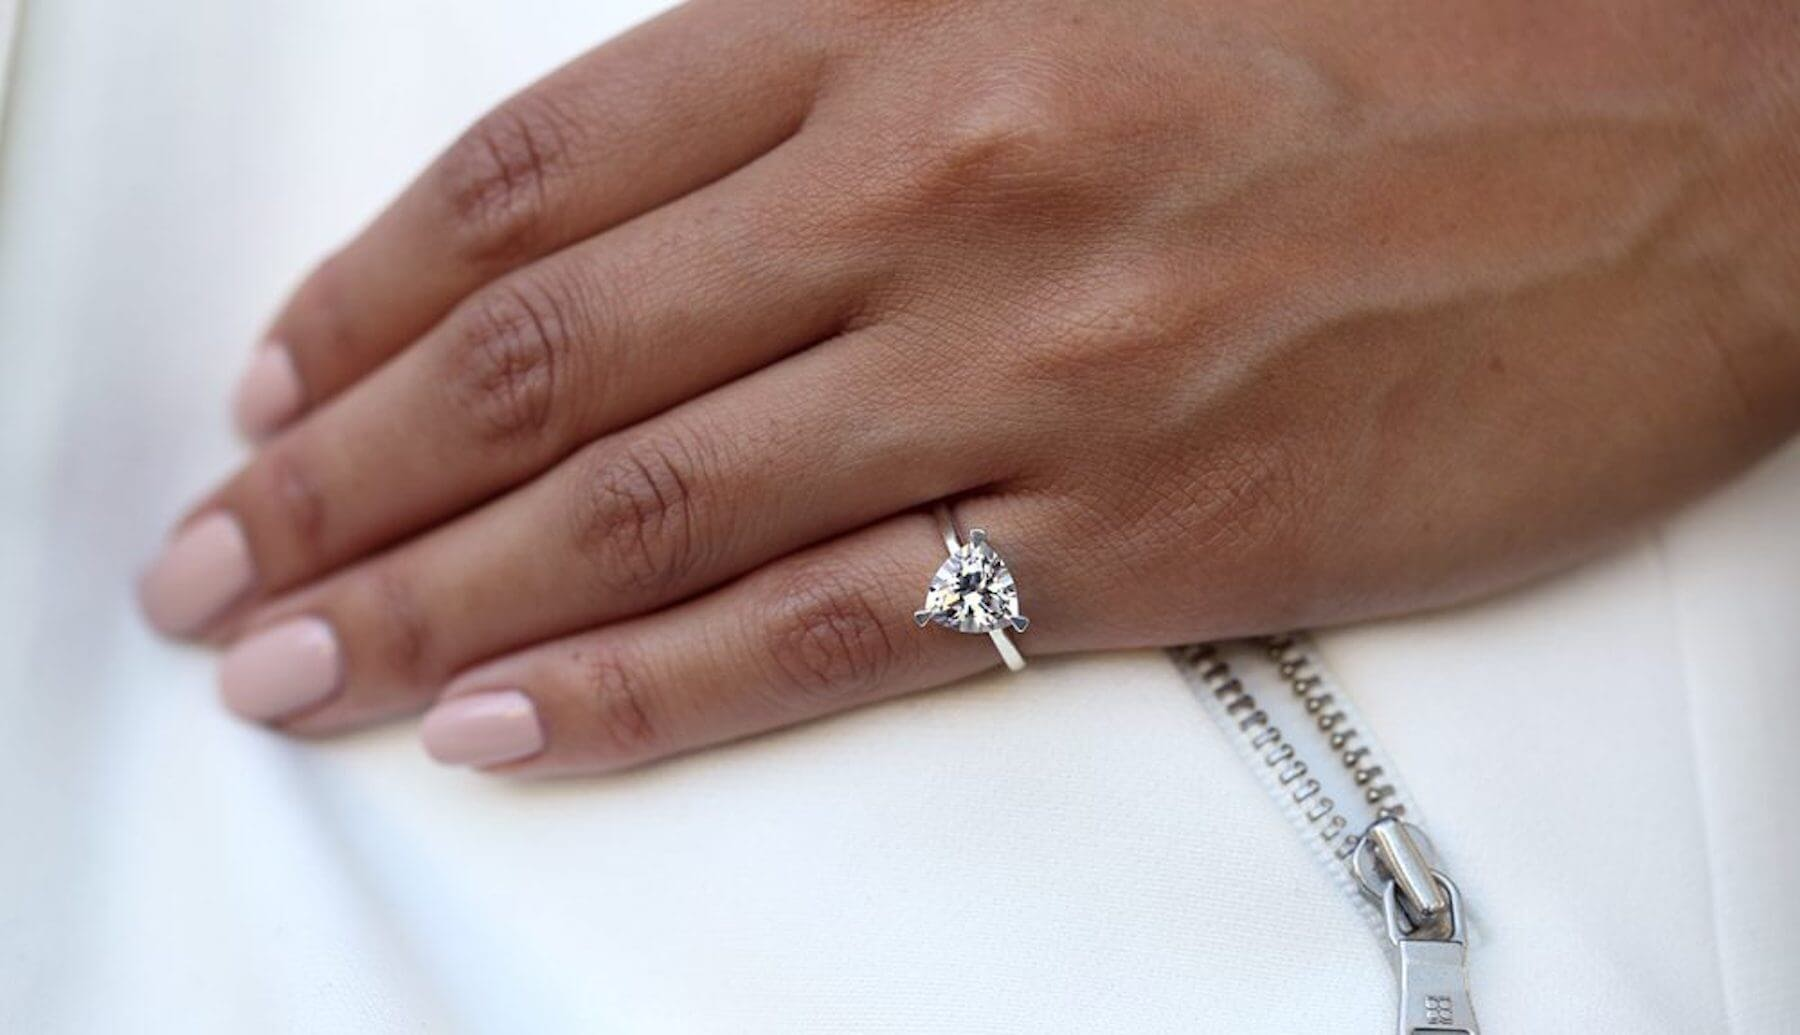 a ring on a pinky finger